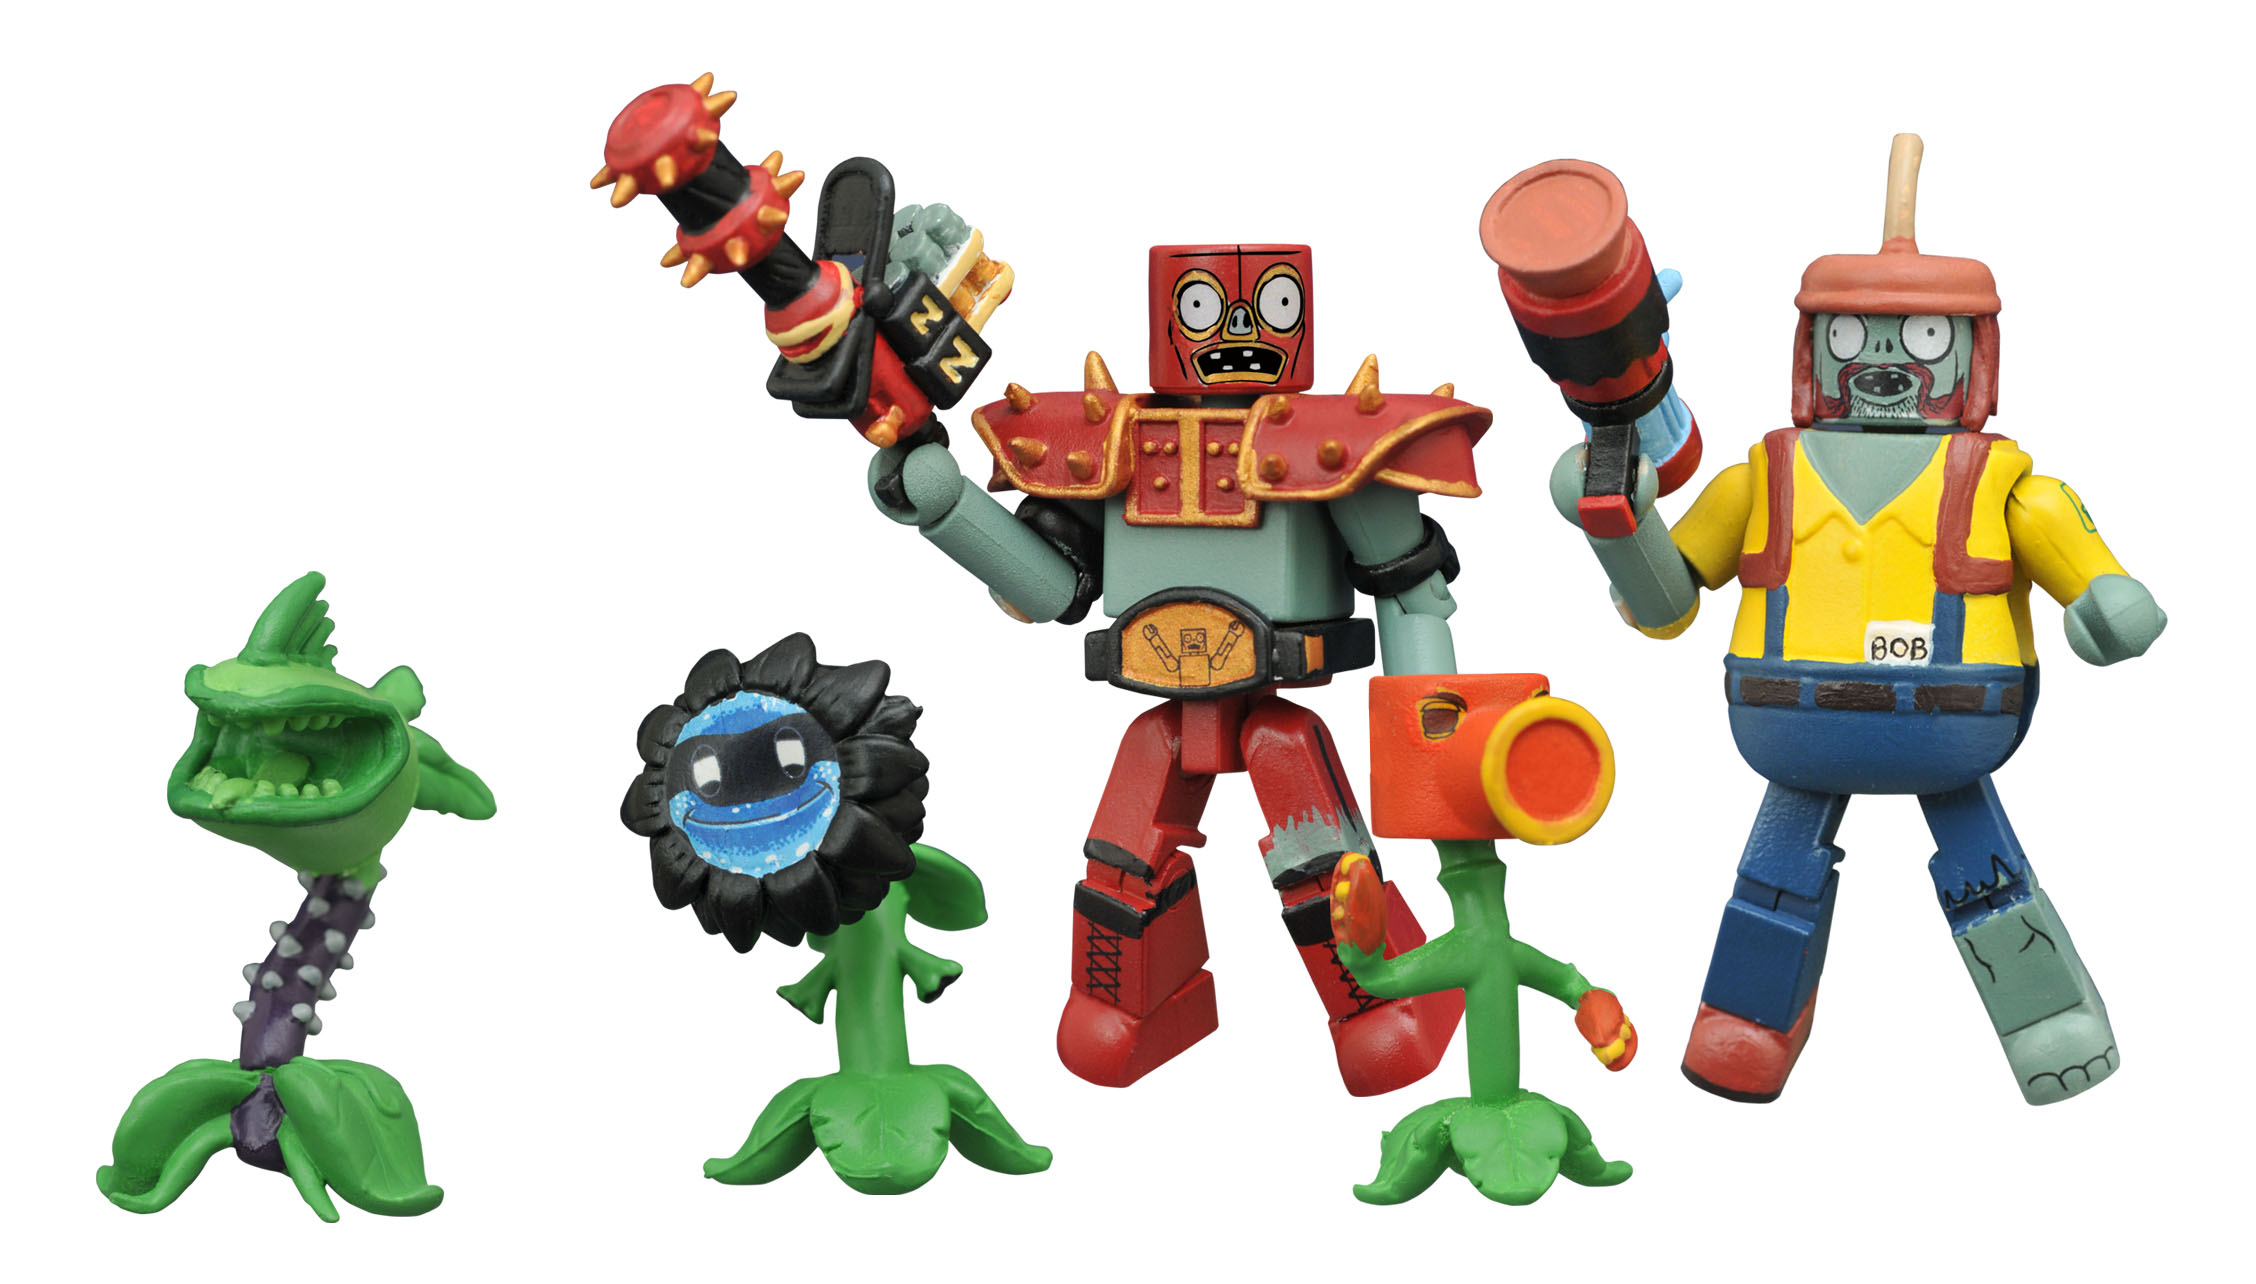 Official photos info for diamond select toys items from - Plants vs zombies garden warfare toys ...